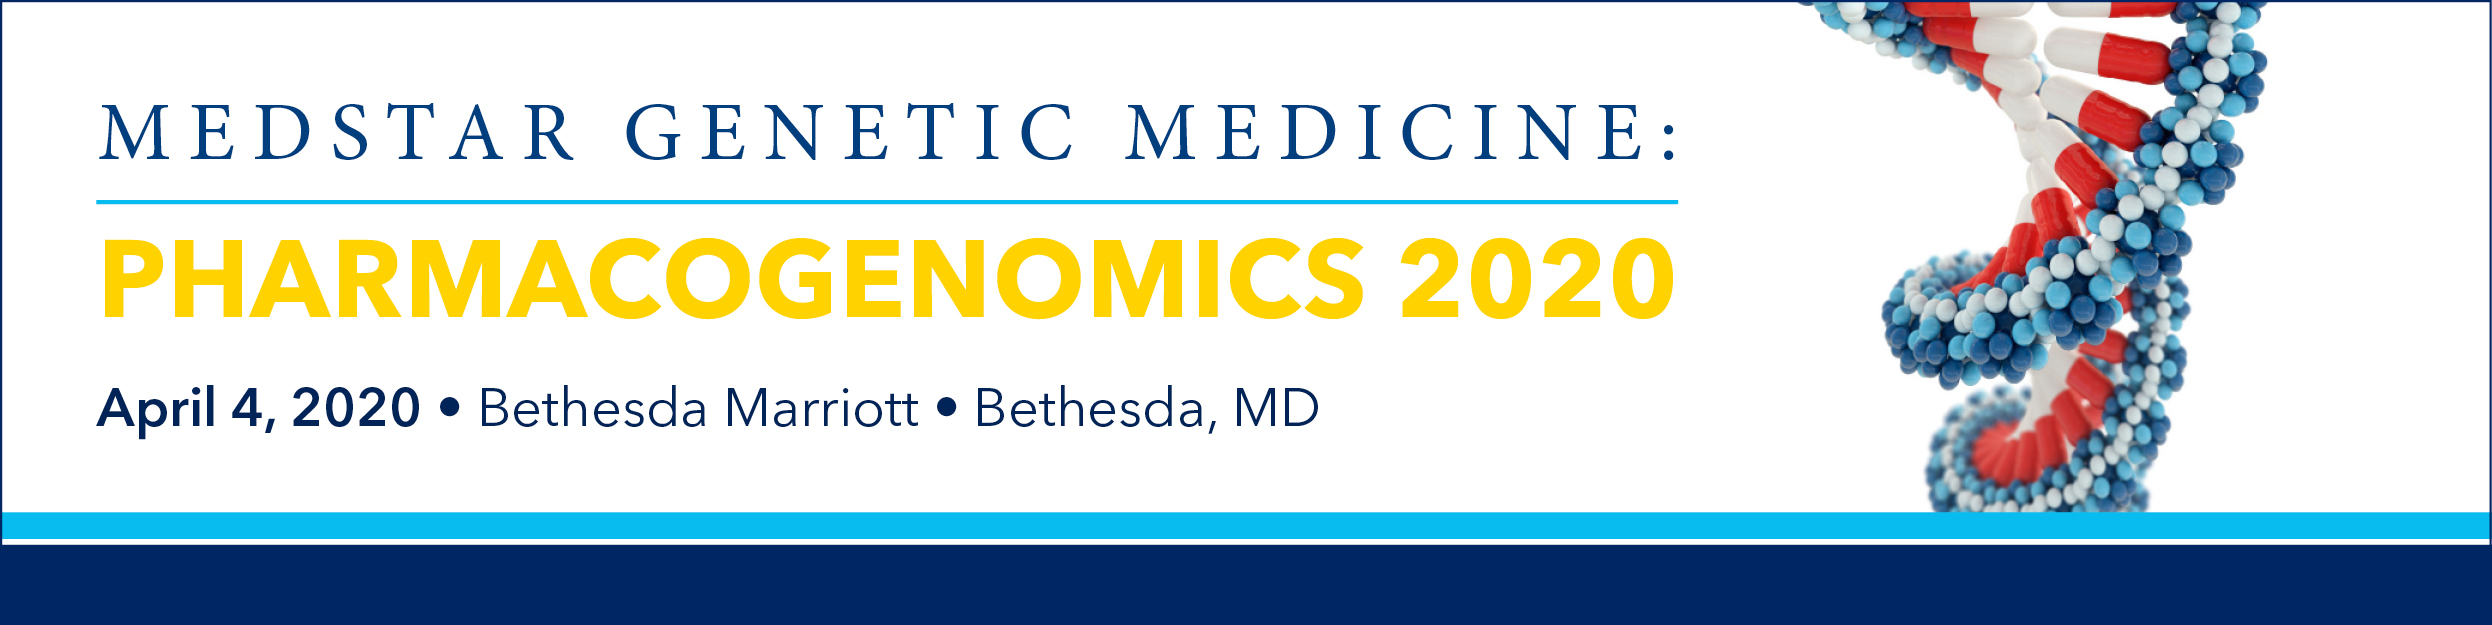 2020 MedStar Genetic Medicine: Pharmacogenomics Banner